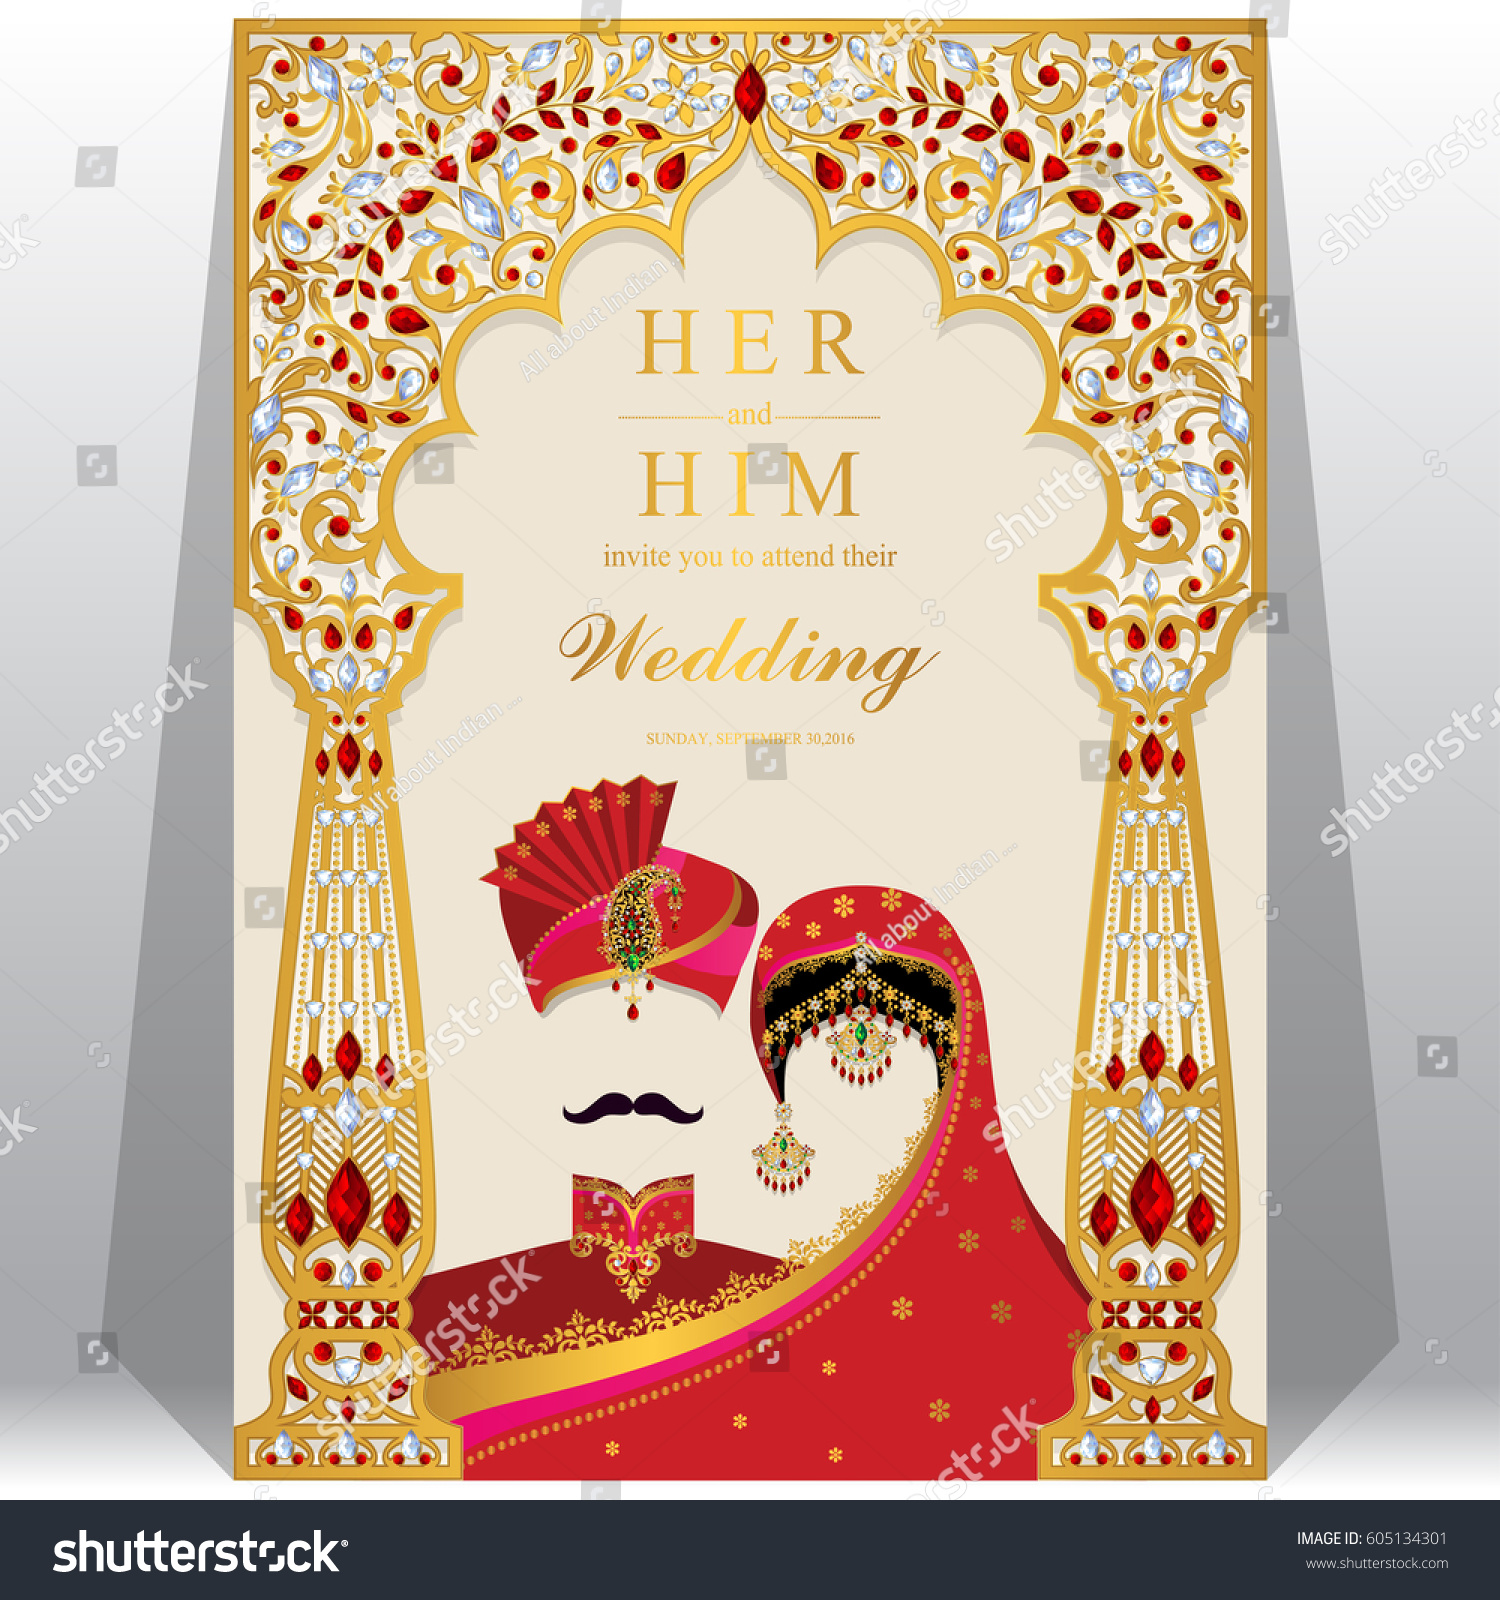 Indian Wedding Invitation Card Templates Gold Stock Vector (Royalty ...